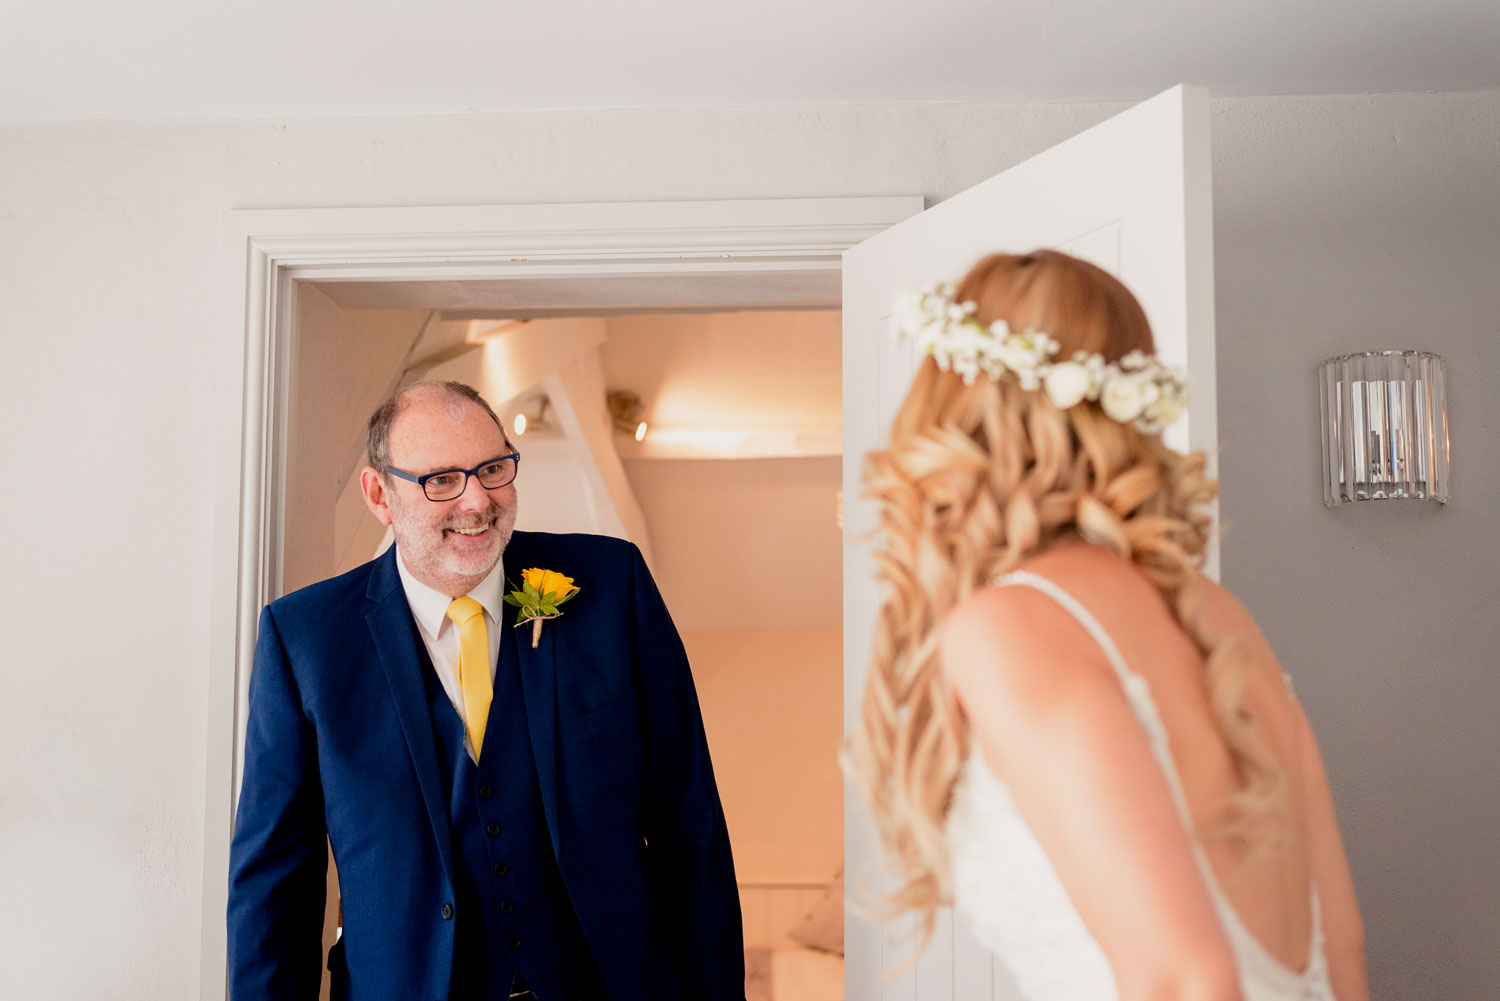 Dad see daughter in wedding dress